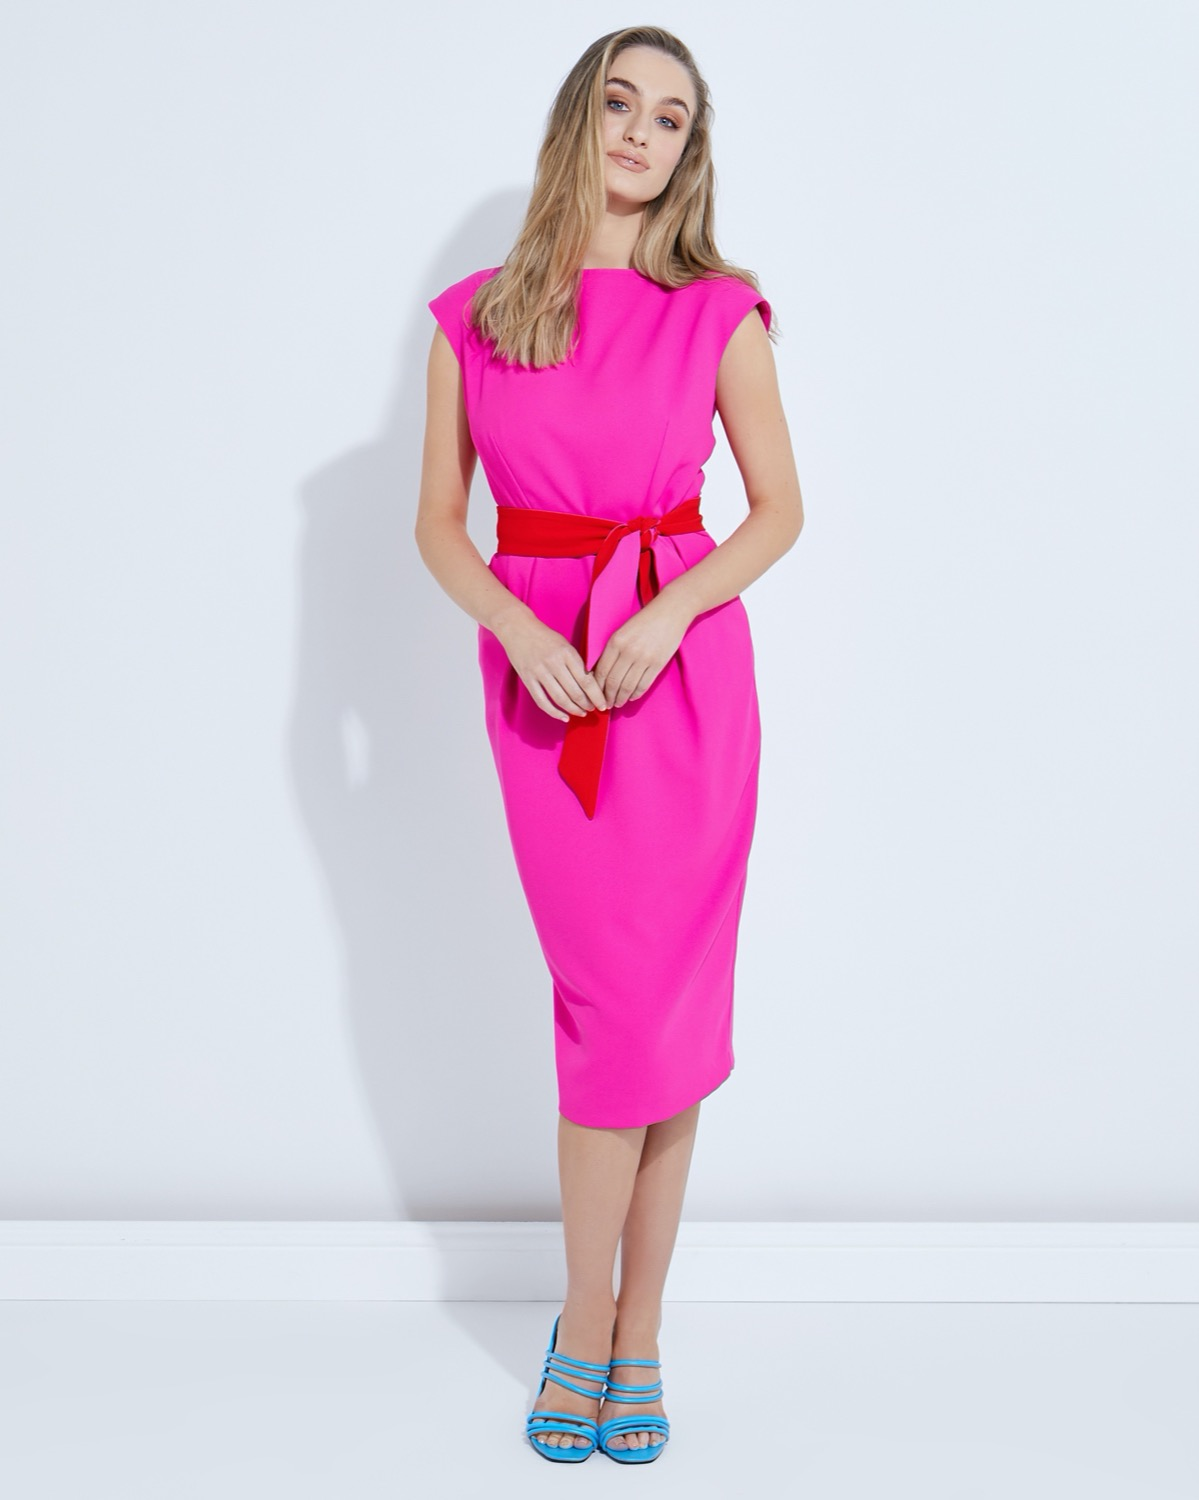 Lennon Courtney at Dunnes Stores Pink Dulotte Dress